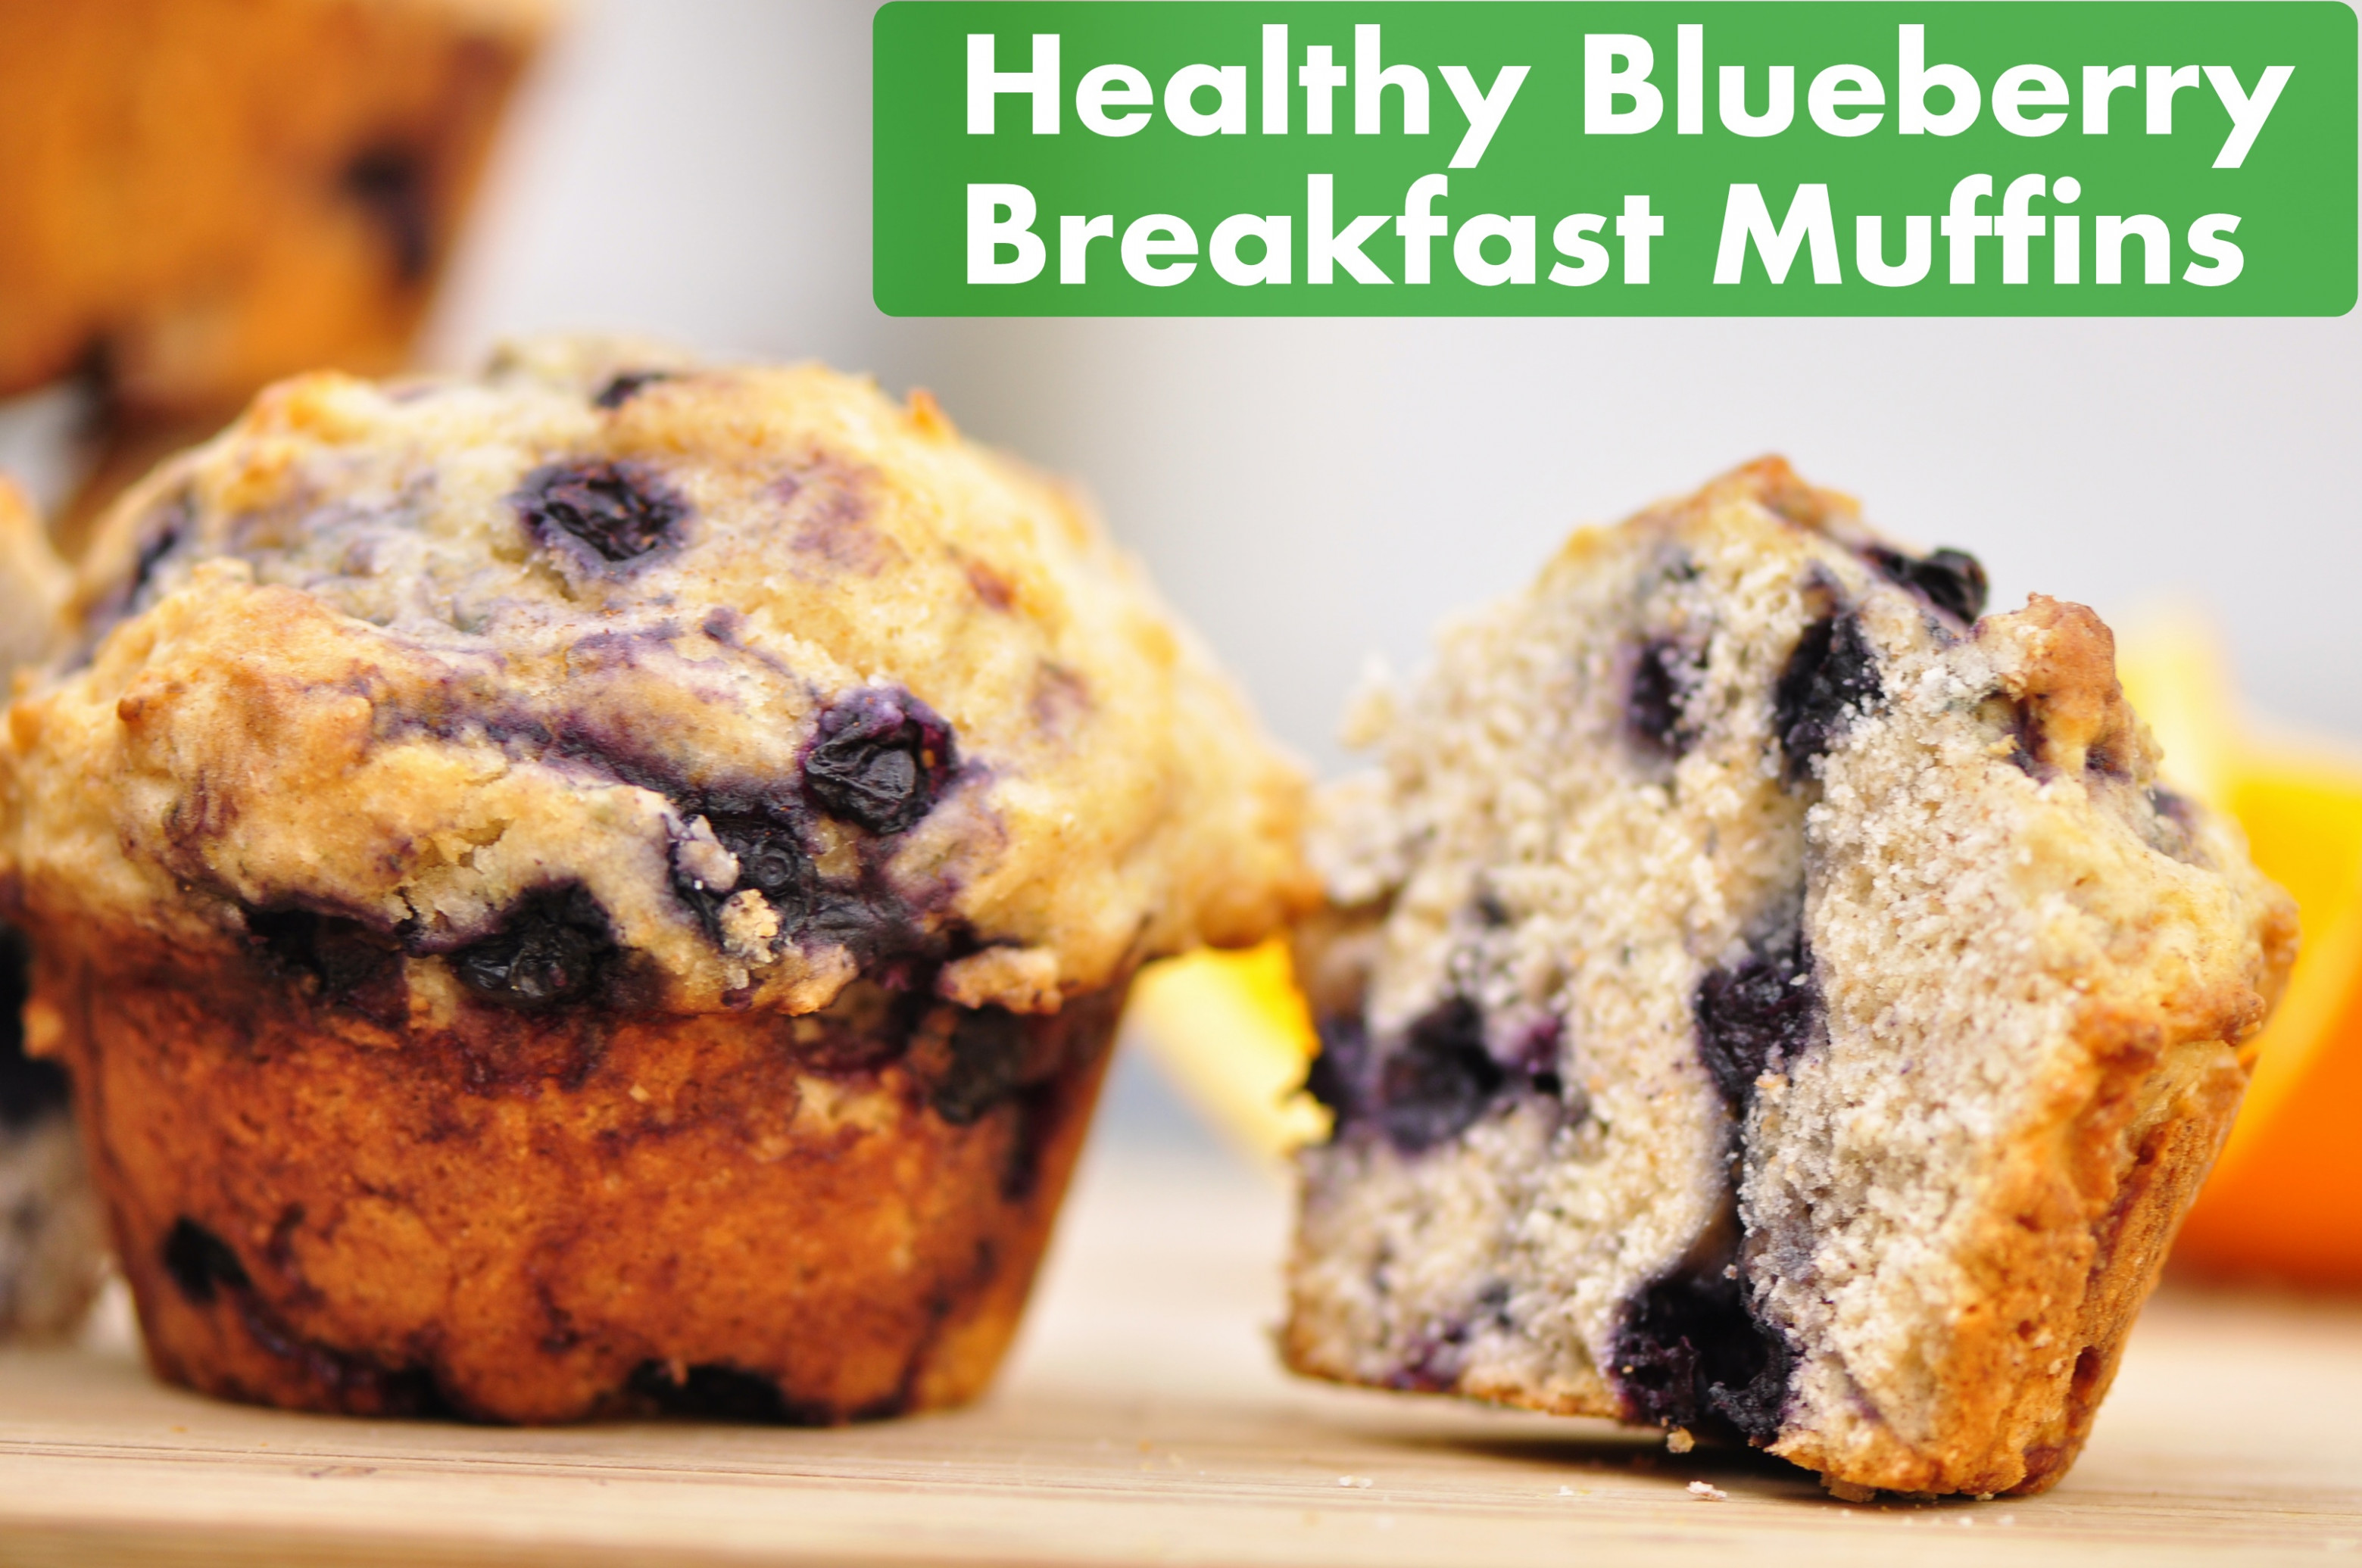 Healthy Blueberry Breakfast Muffins – the vegetarian ginger